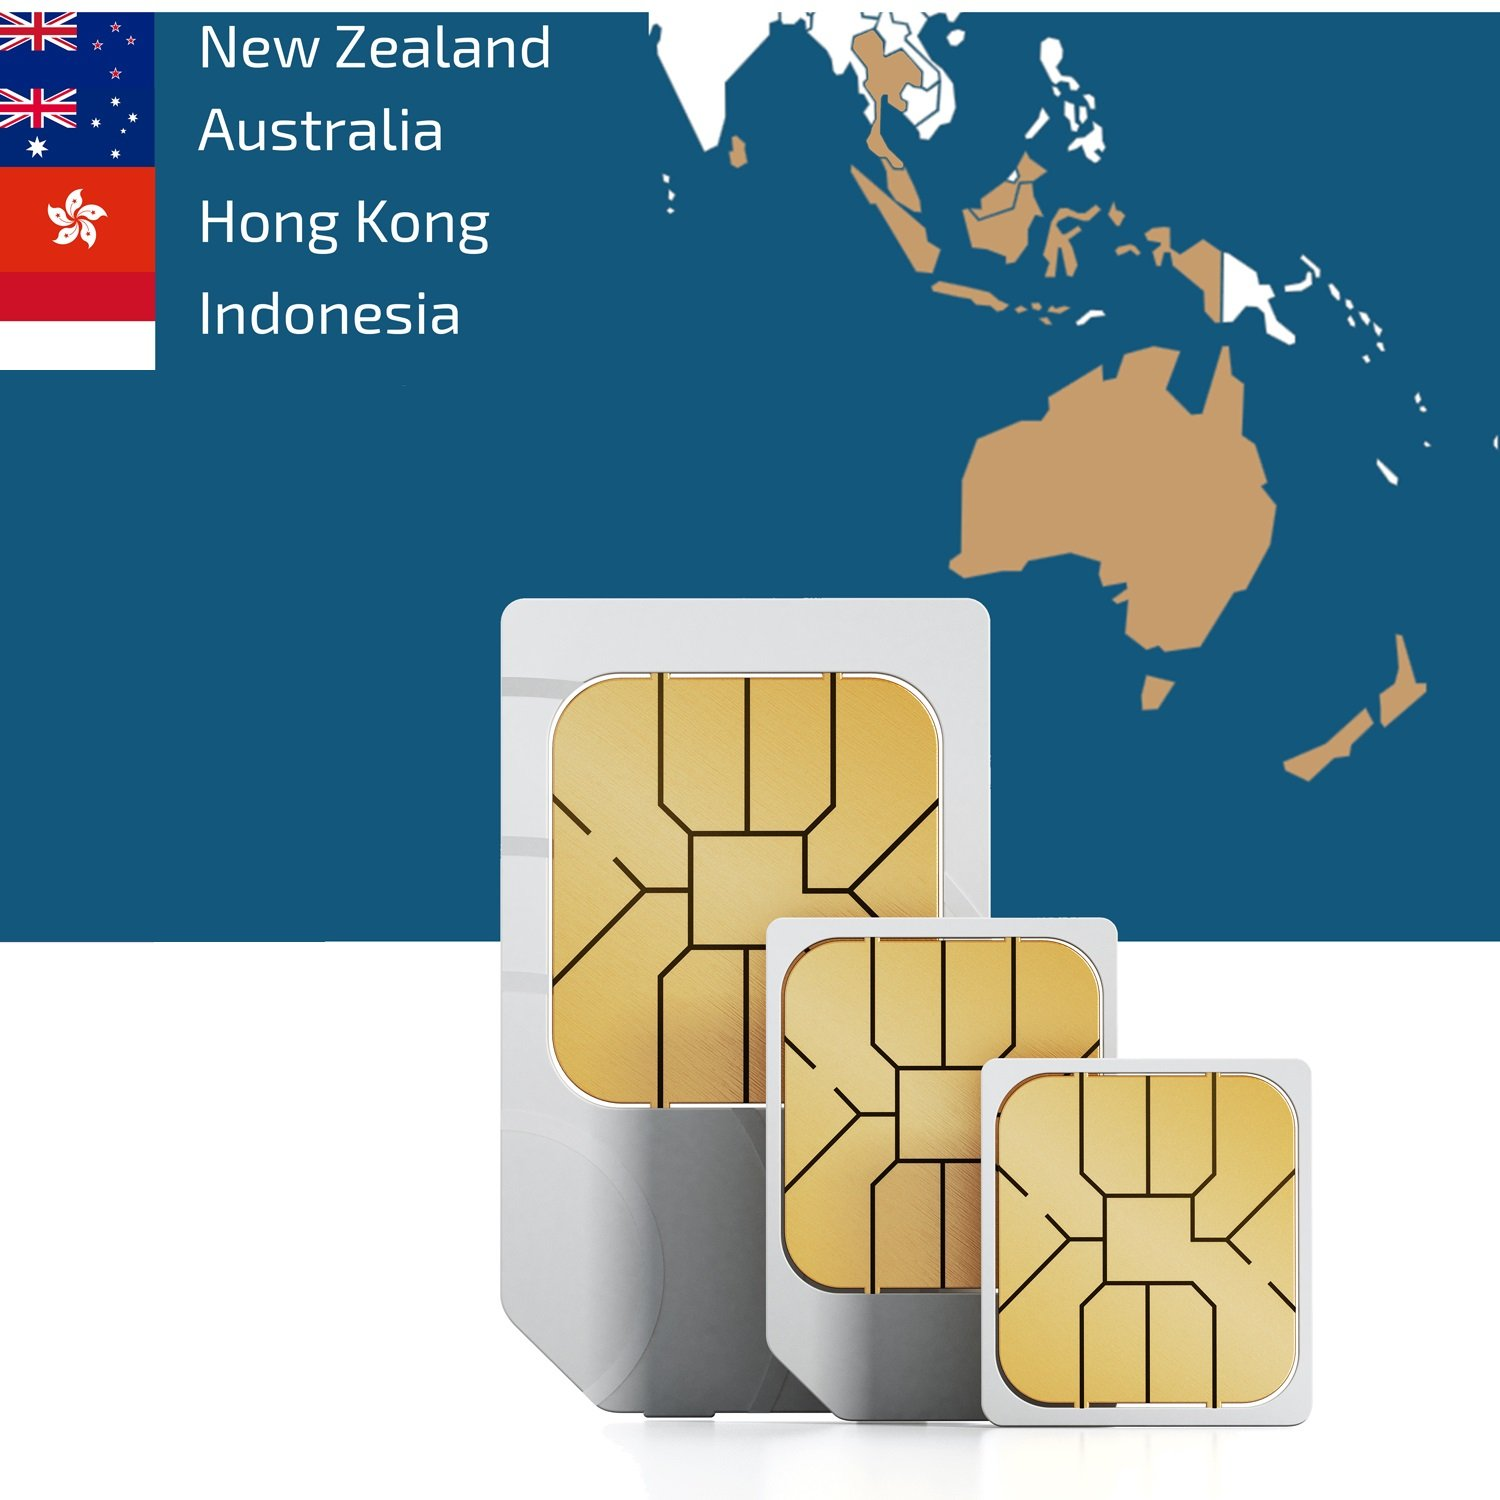 travSIM: Prepaid 3UK Data SIM Card for South Eastern Asia and Oceania with 12 GB Data Valid for 30 Days (Coverage in New Zealand, Australia, Hong Kong and Indonesia at 3G/4G LTE Internet Speed) by travsim